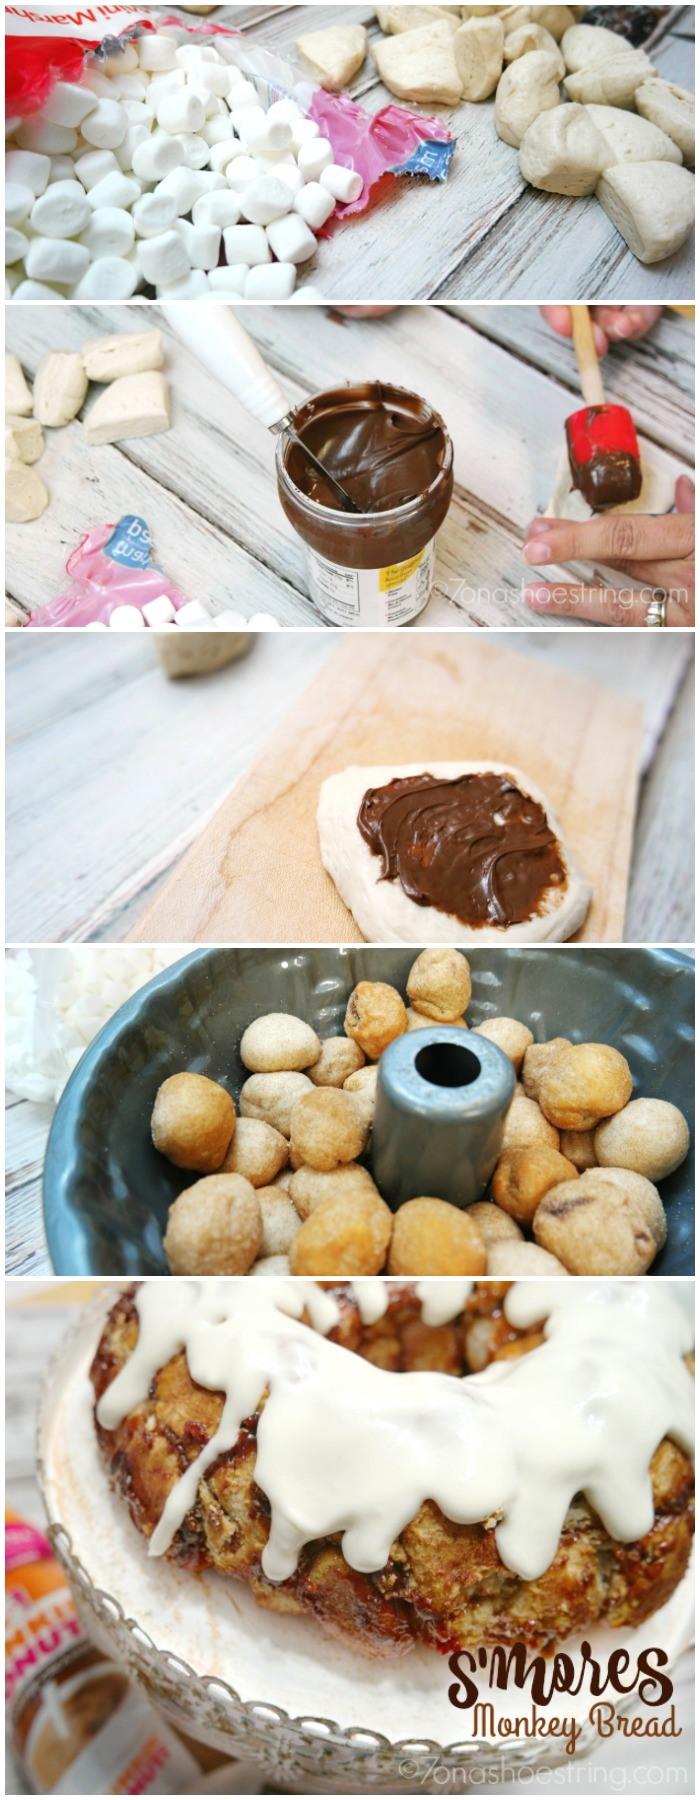 S'mores Monkey Bread with Nutella and marshmallows - 7onashoestring